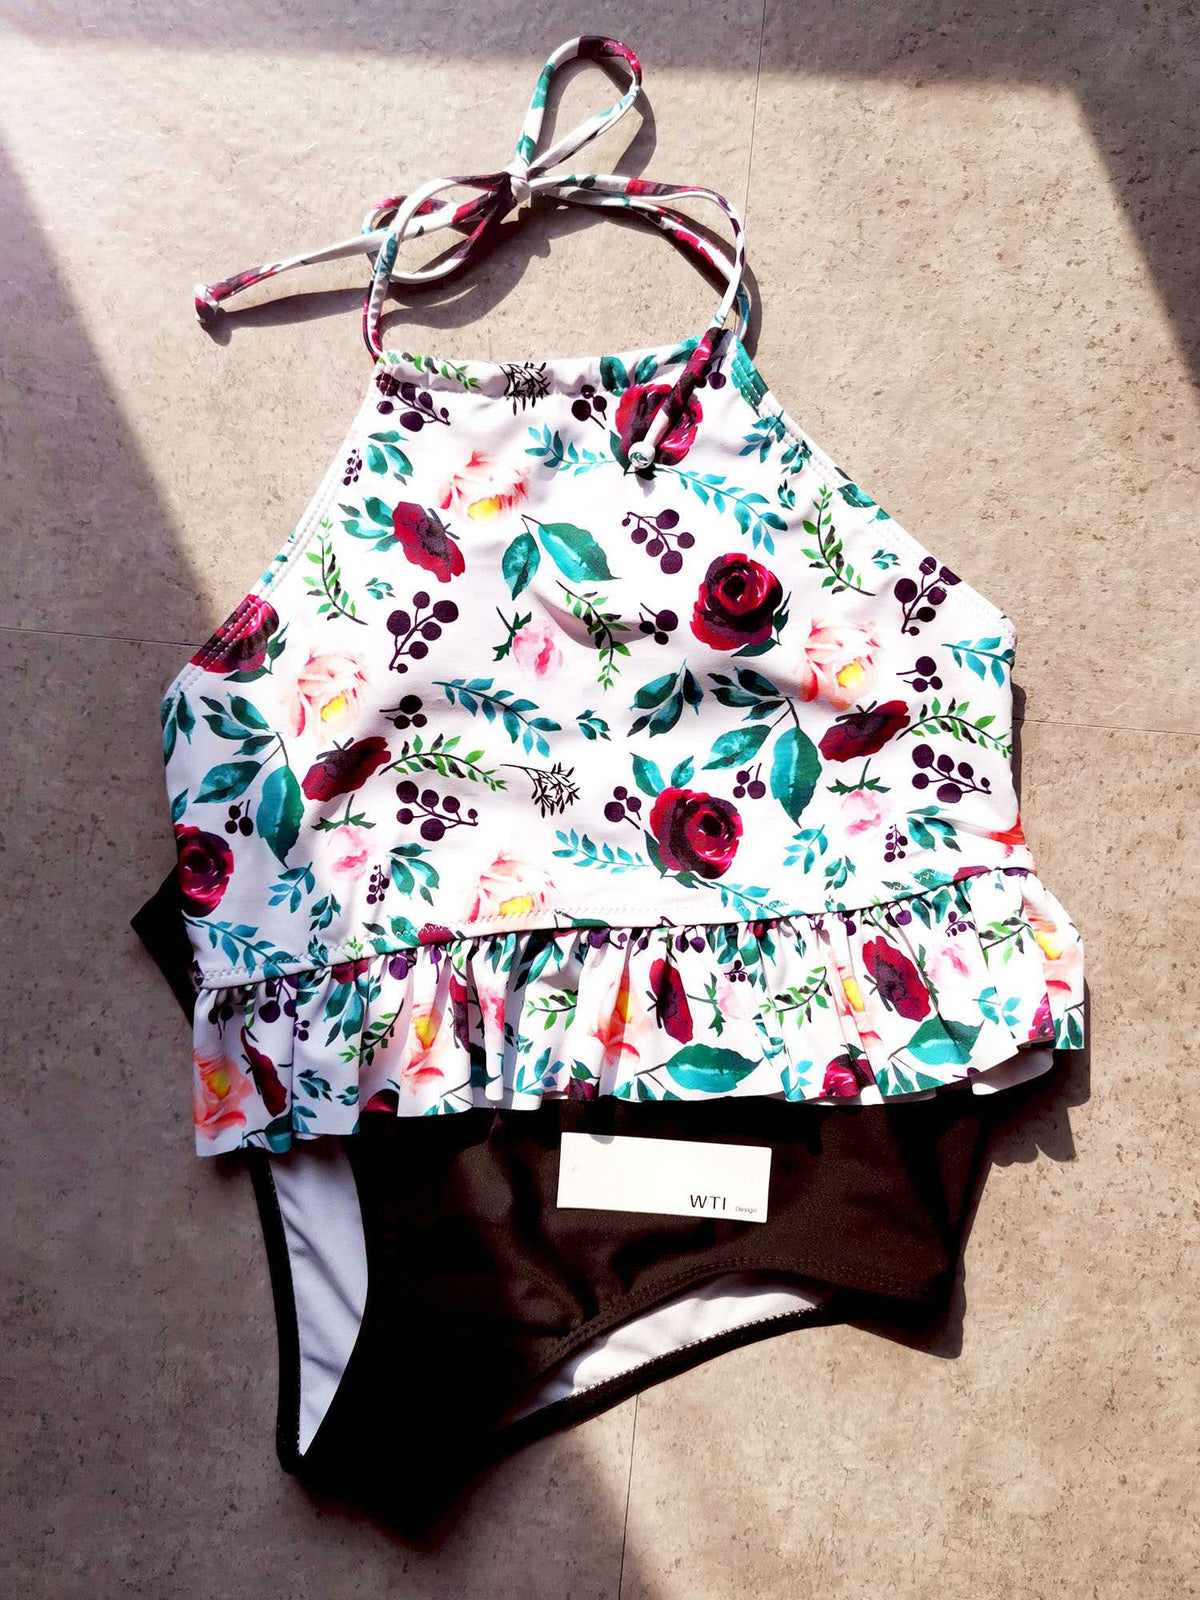 Floral Print Ruffle Hems High Neck Two Piece Bikini Set - worthtryit.com